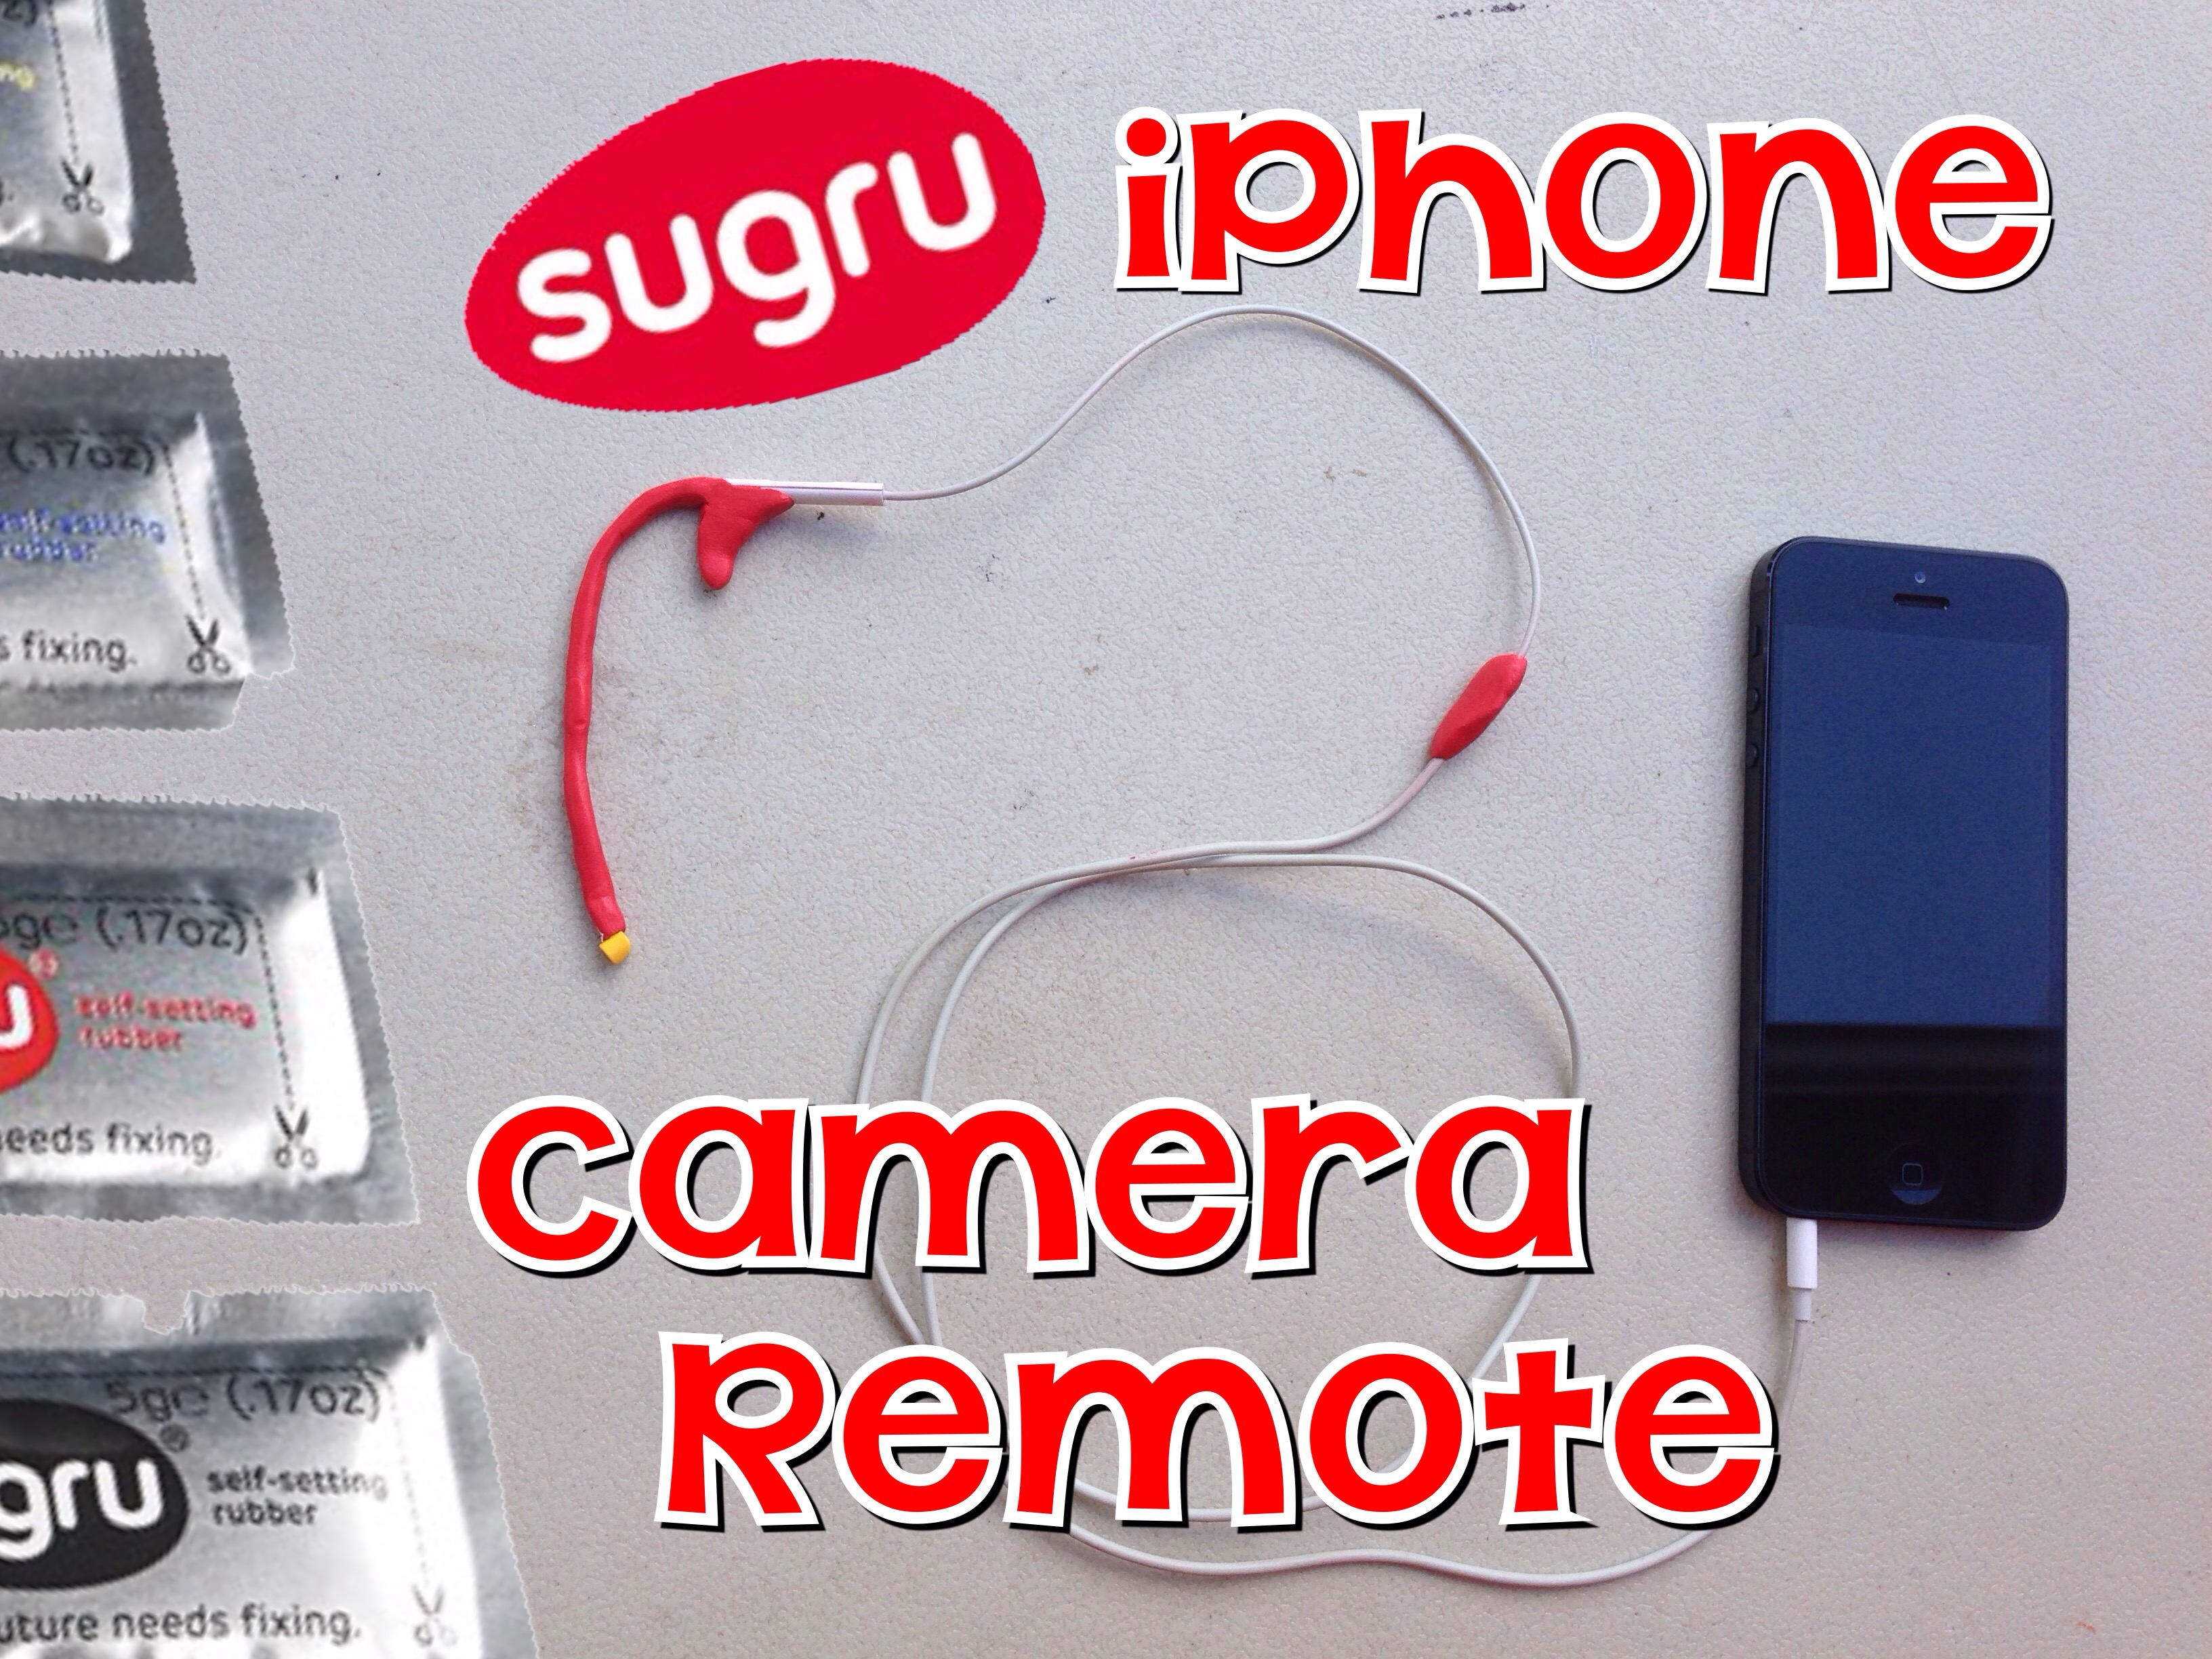 Picture of Sugru IPhone Camera Remote With Lego Hand